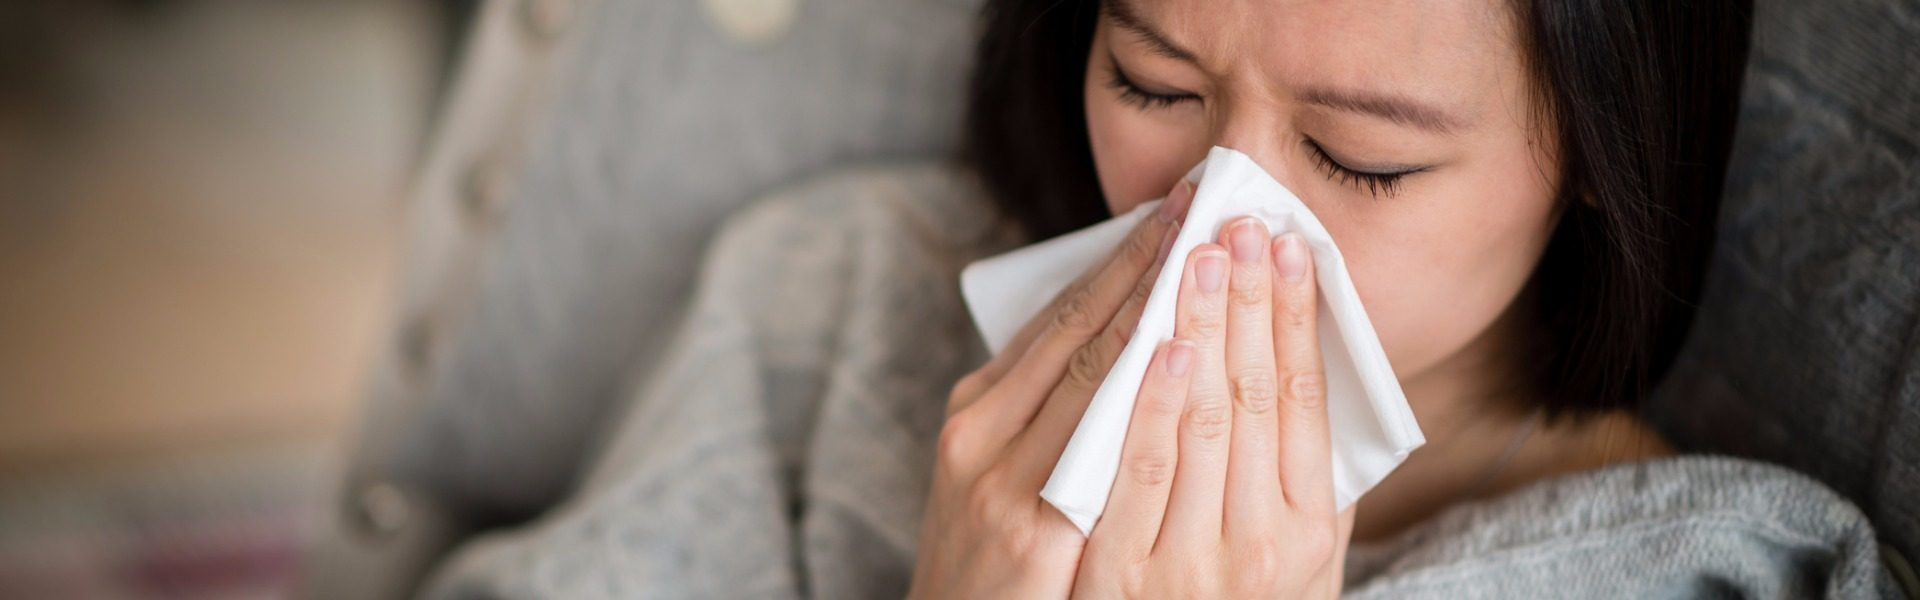 a cold, the flu or pneumonia _ mercy health blog